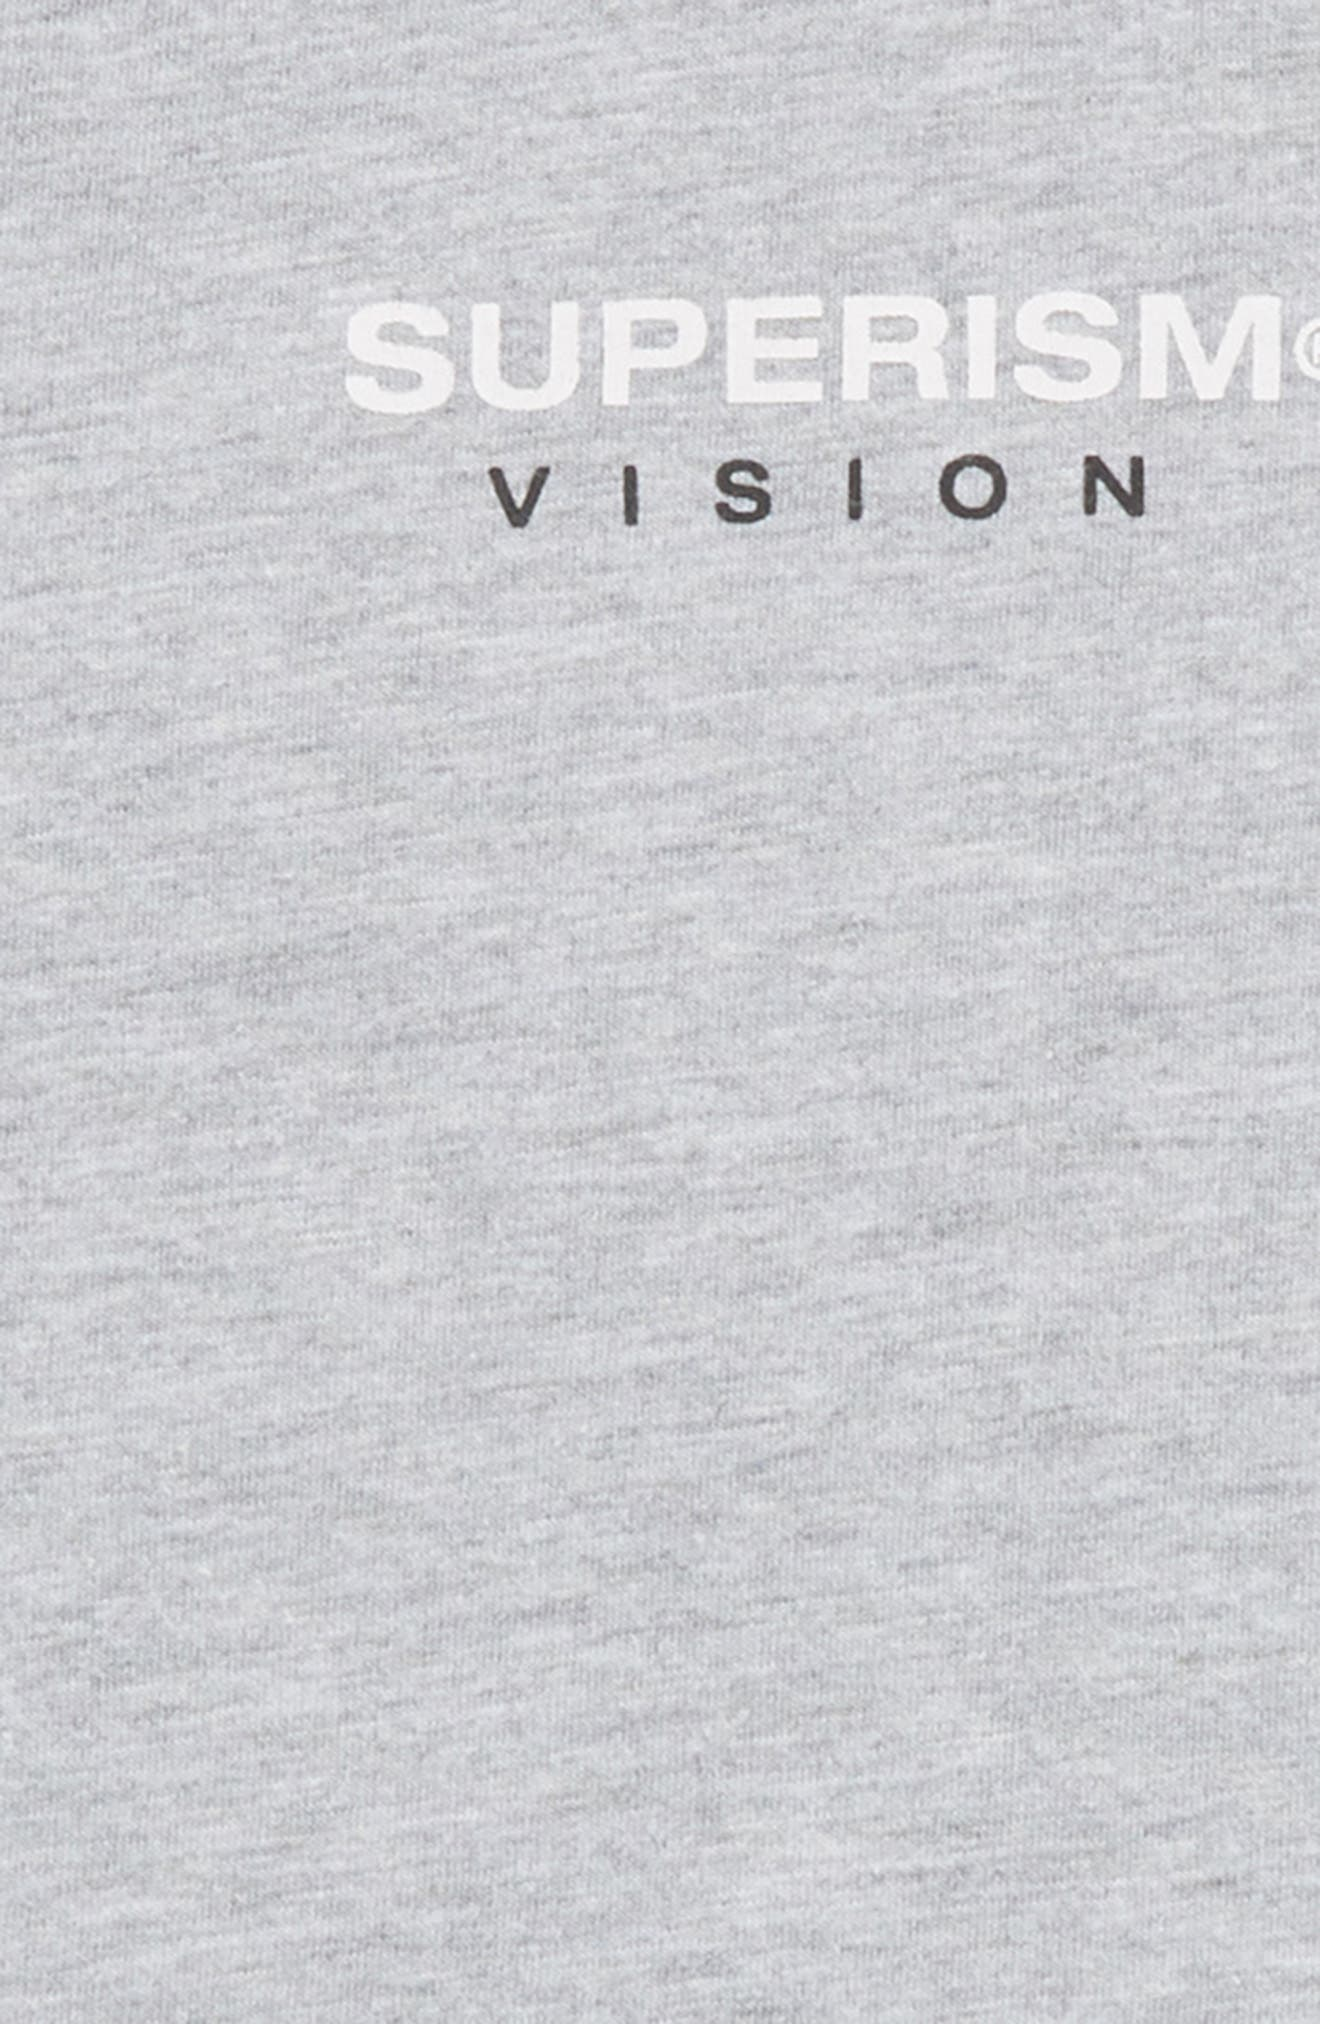 Rose Vision T-Shirt,                             Alternate thumbnail 3, color,                             Heather Grey